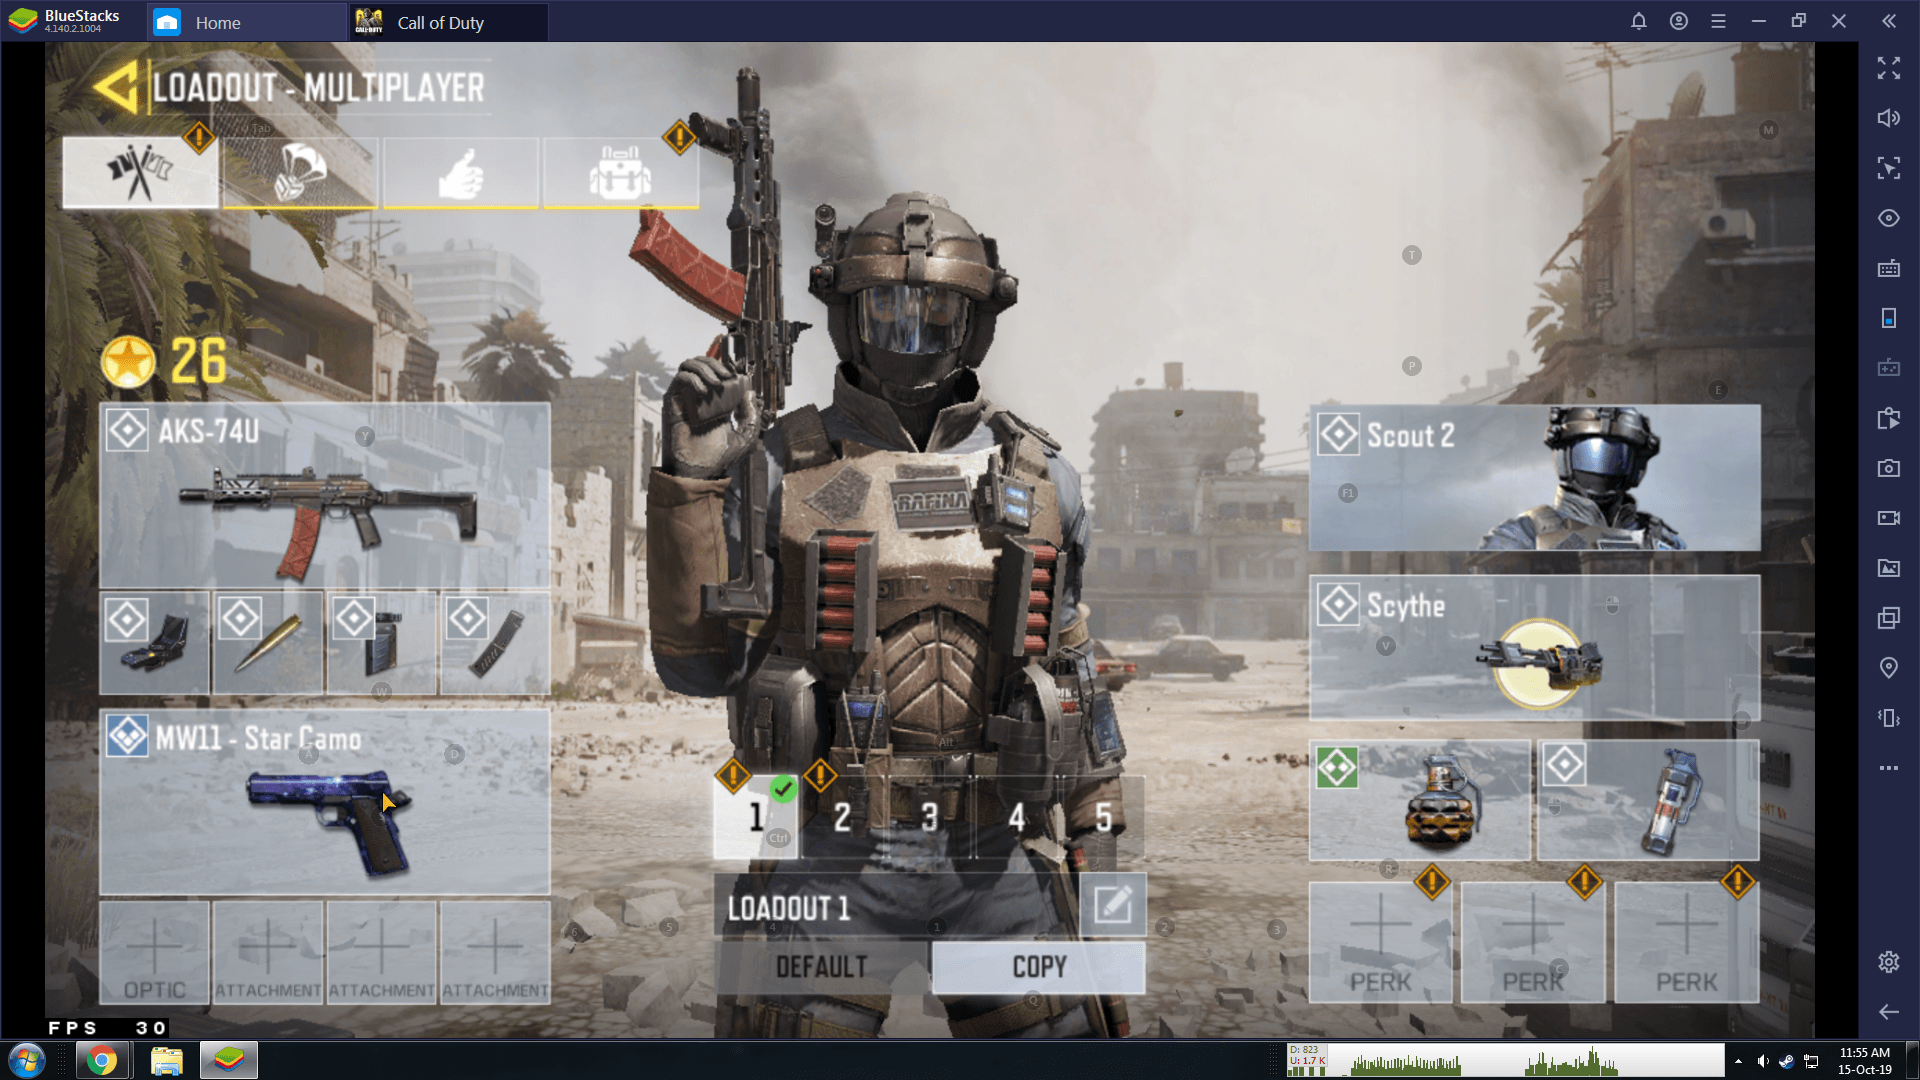 Free For All: The Hot New Game Mode in Call of Duty: Mobile on PC